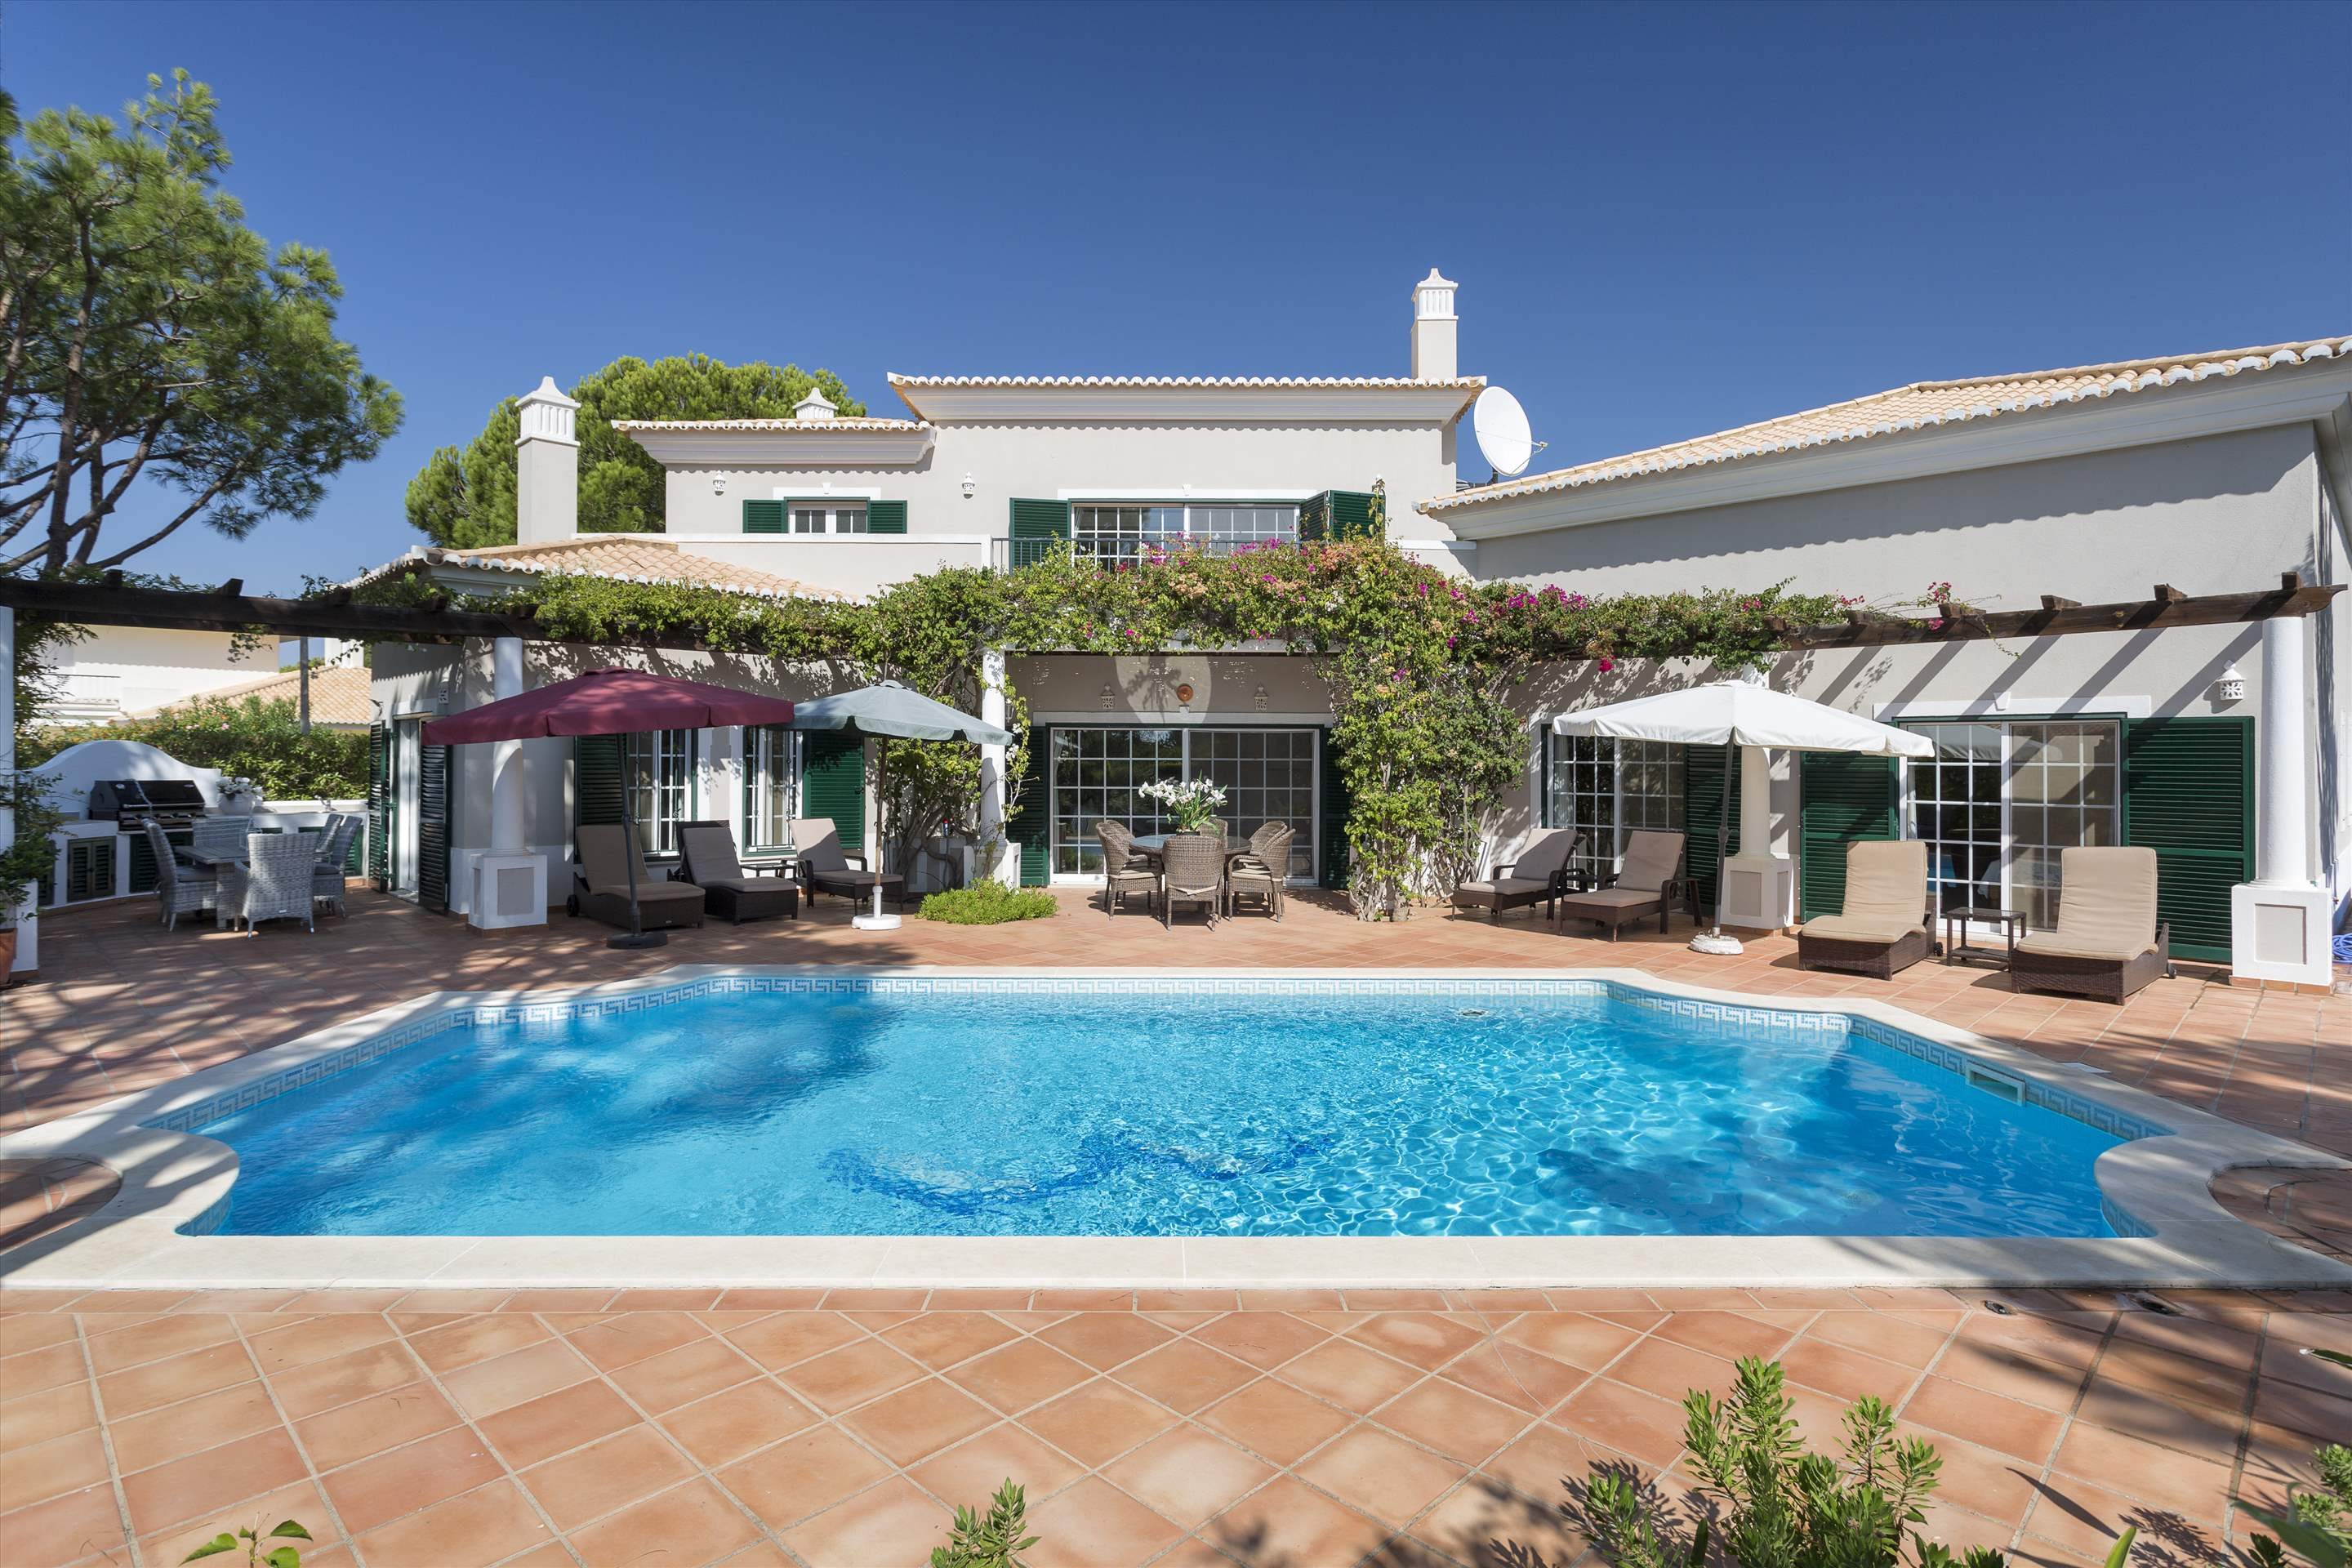 Casa dos Golfinhos, 4 bedroom villa in Vale do Lobo, Algarve Photo #1